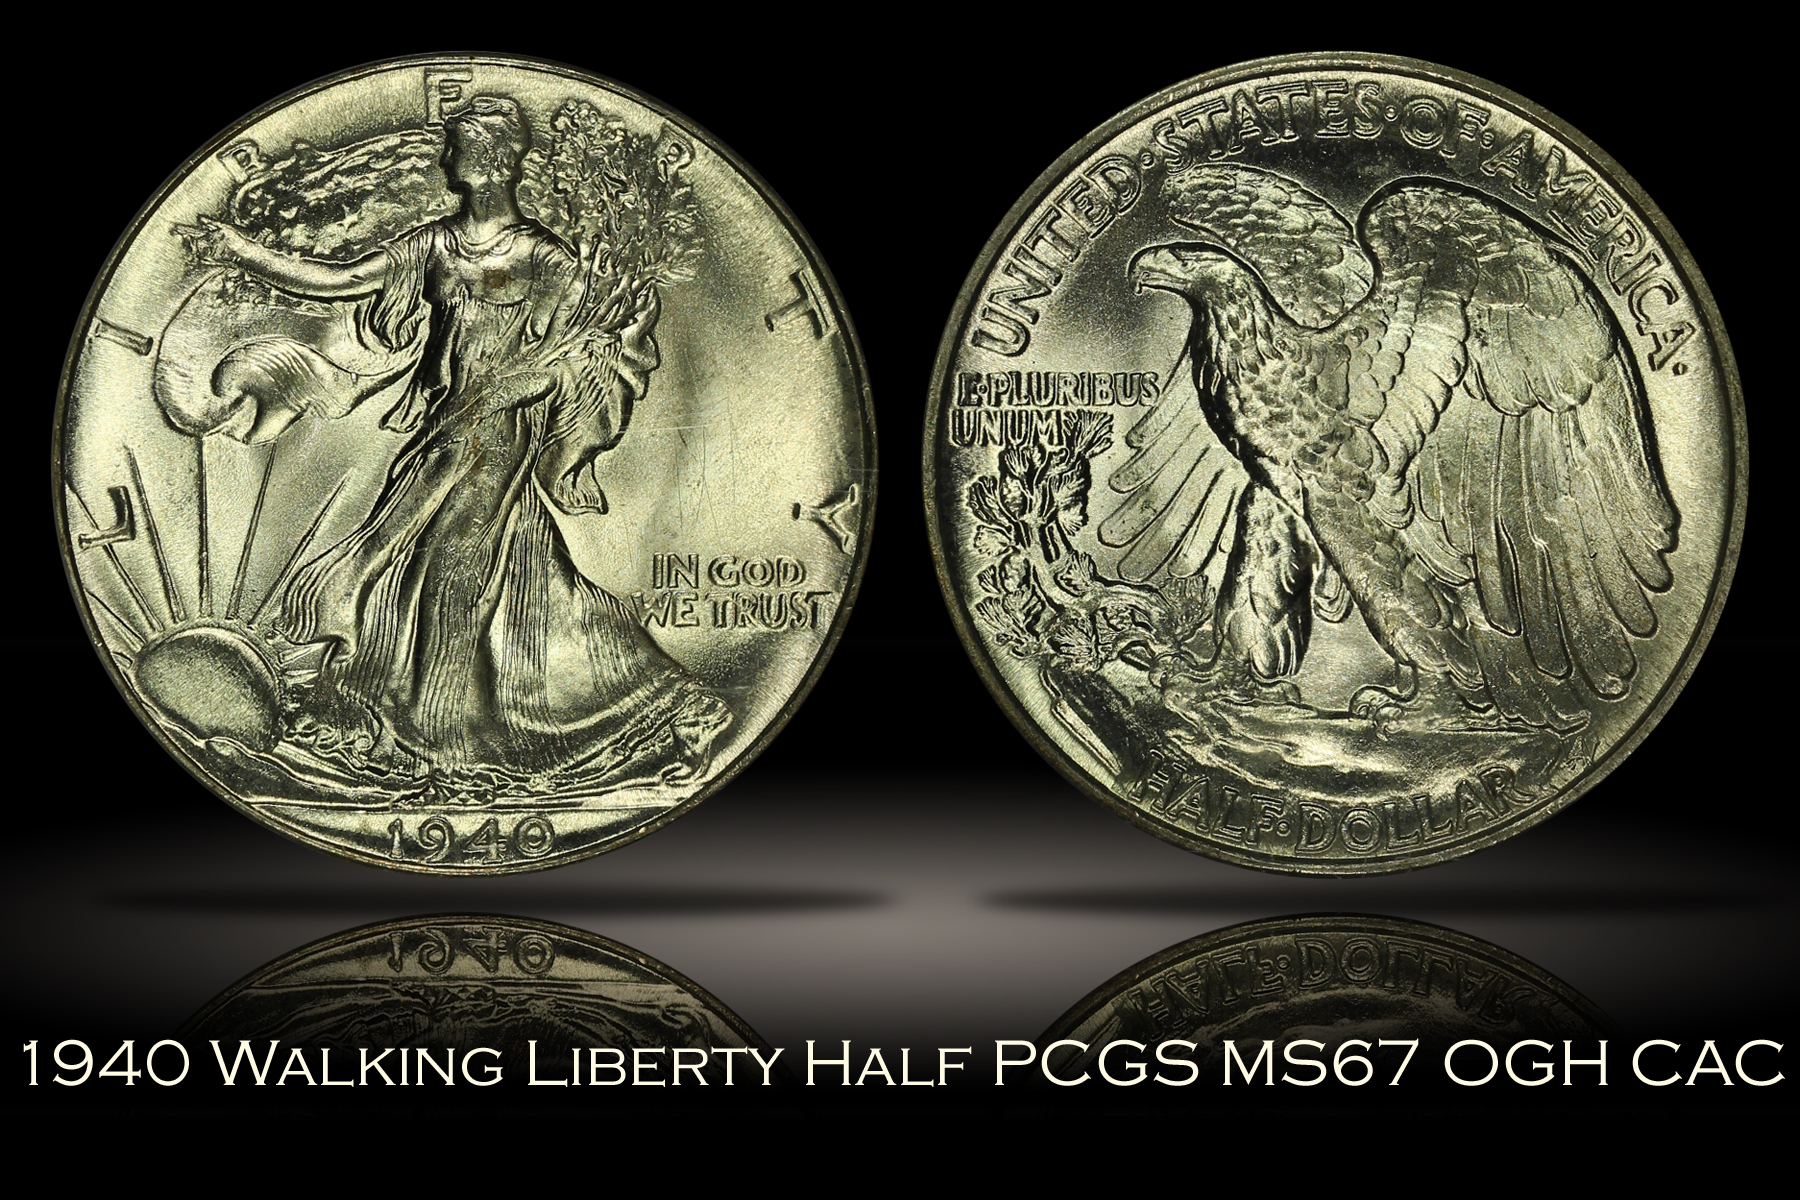 1940 Walking Liberty Half PCGS MS67 OGH CAC